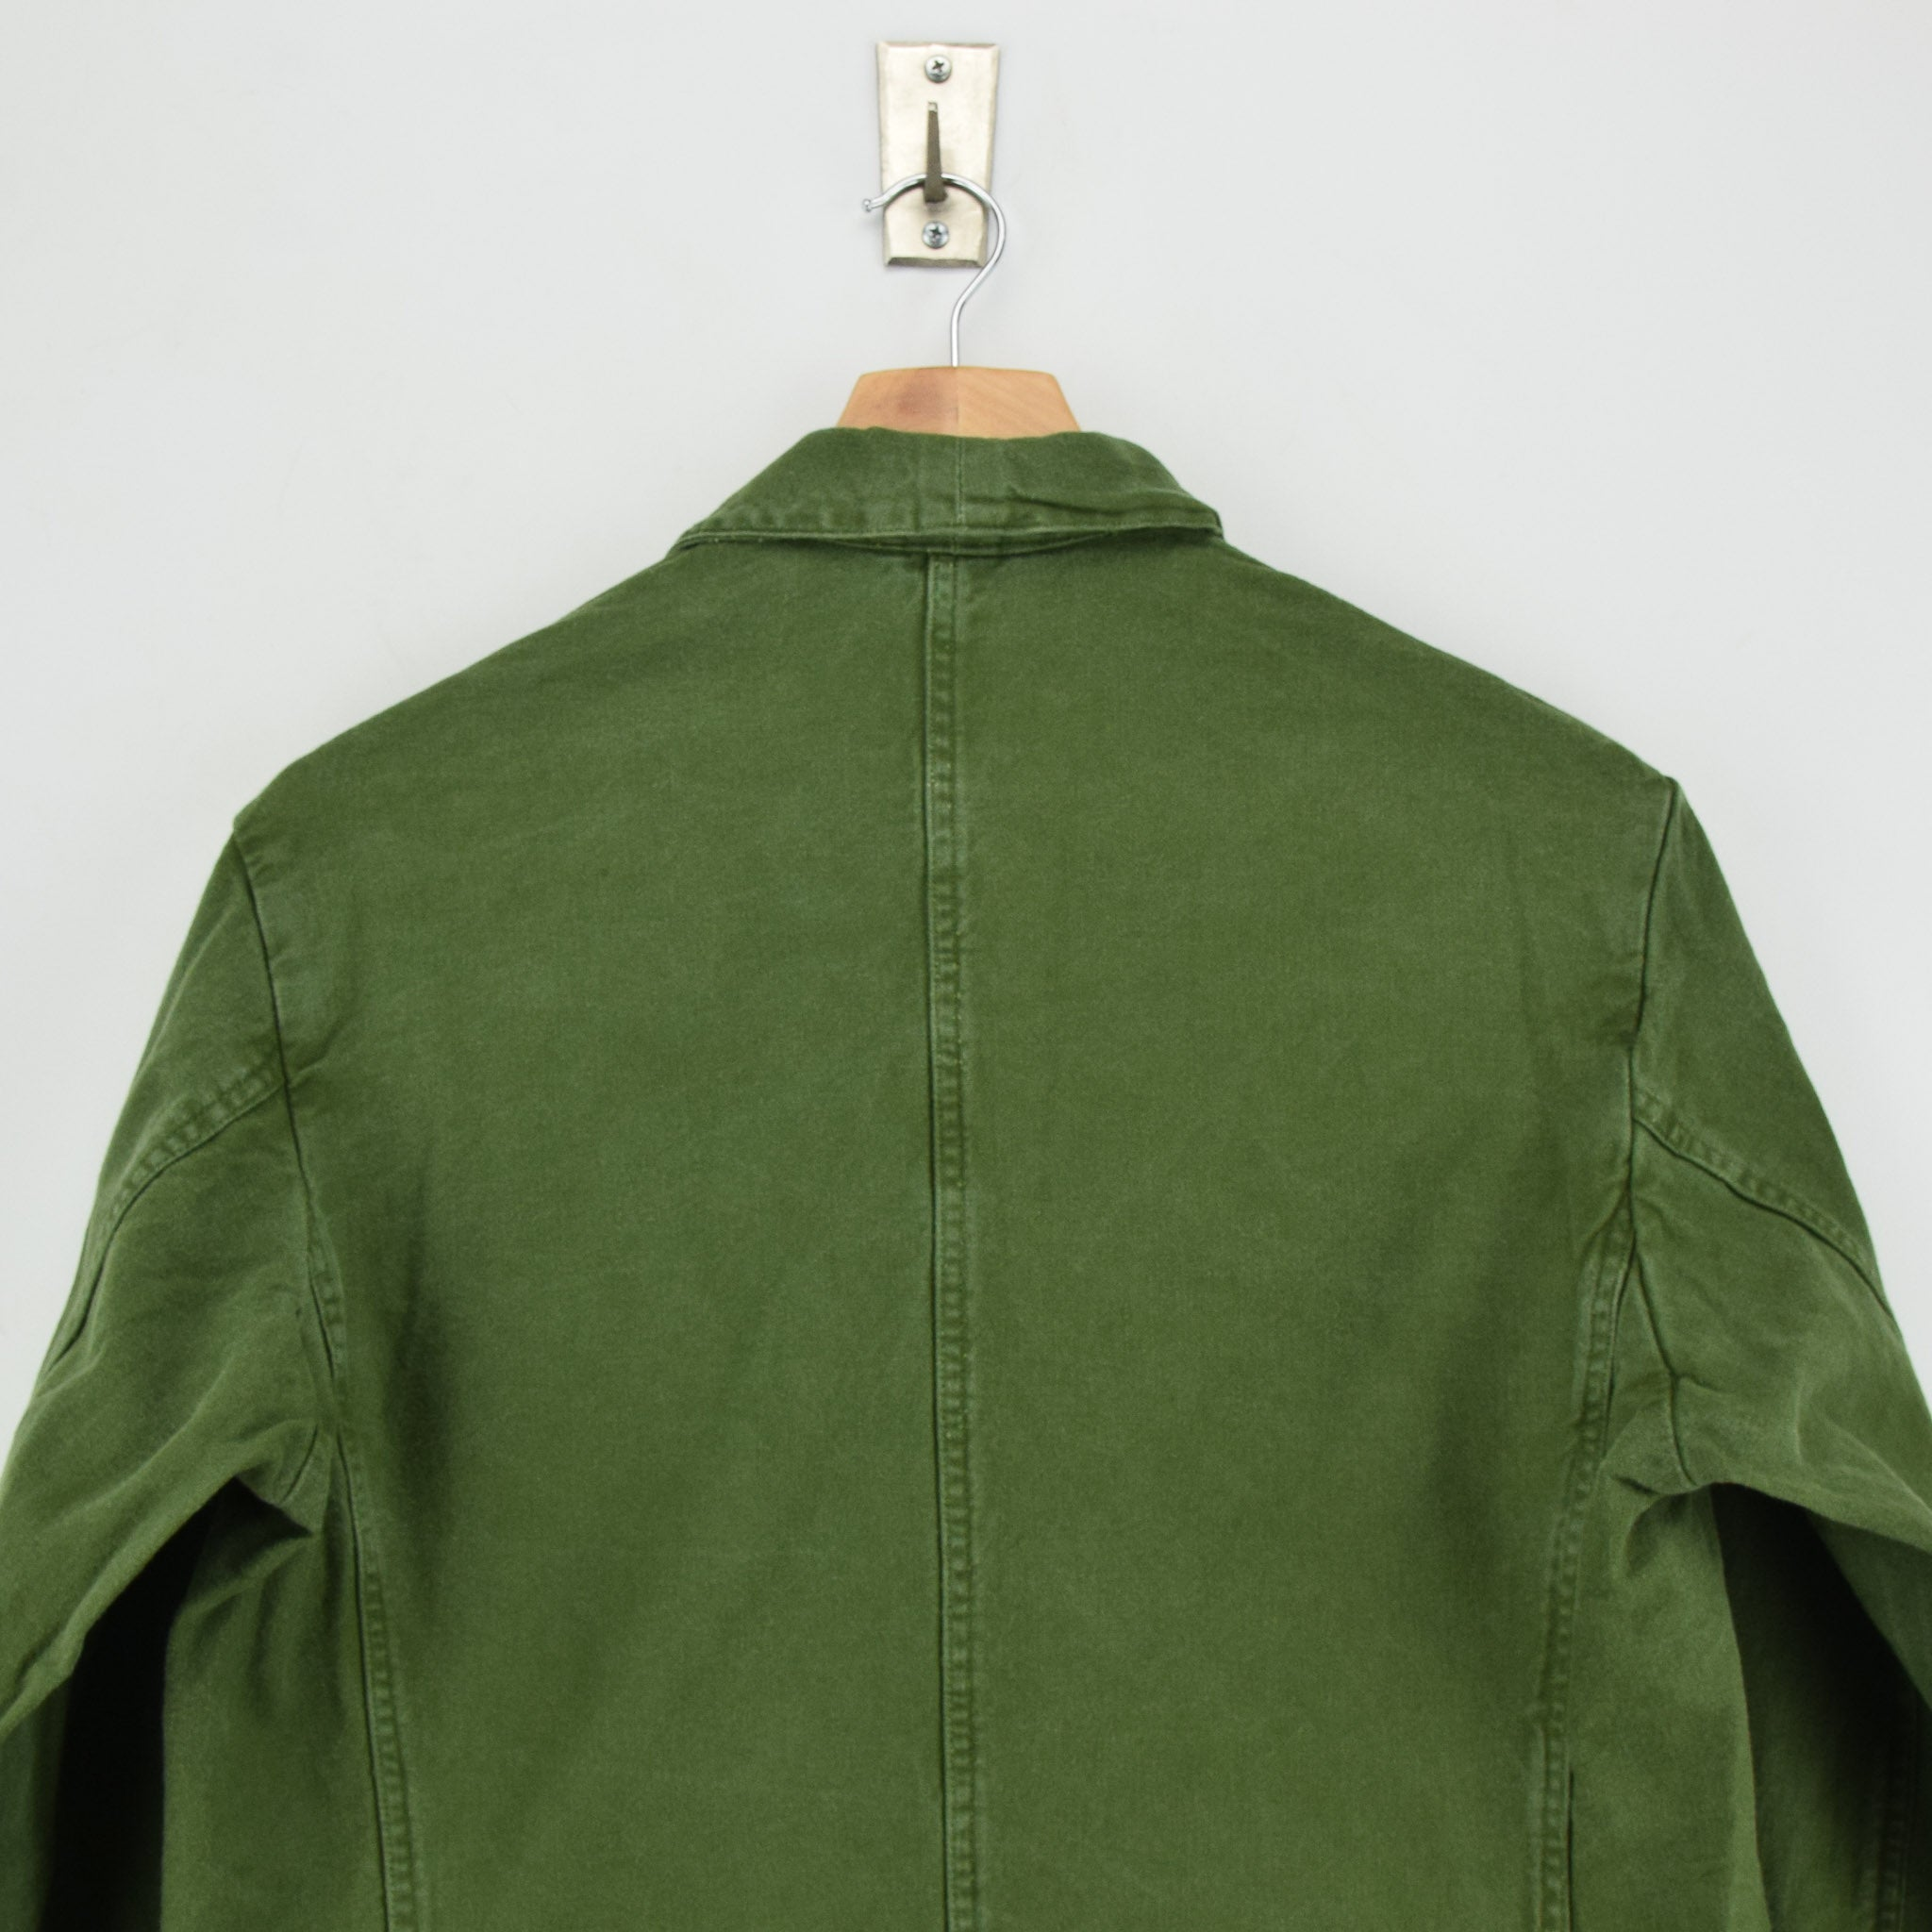 Vintage 60s Swedish Military Field Jacket Worker Style Distressed Green S / M shoulder